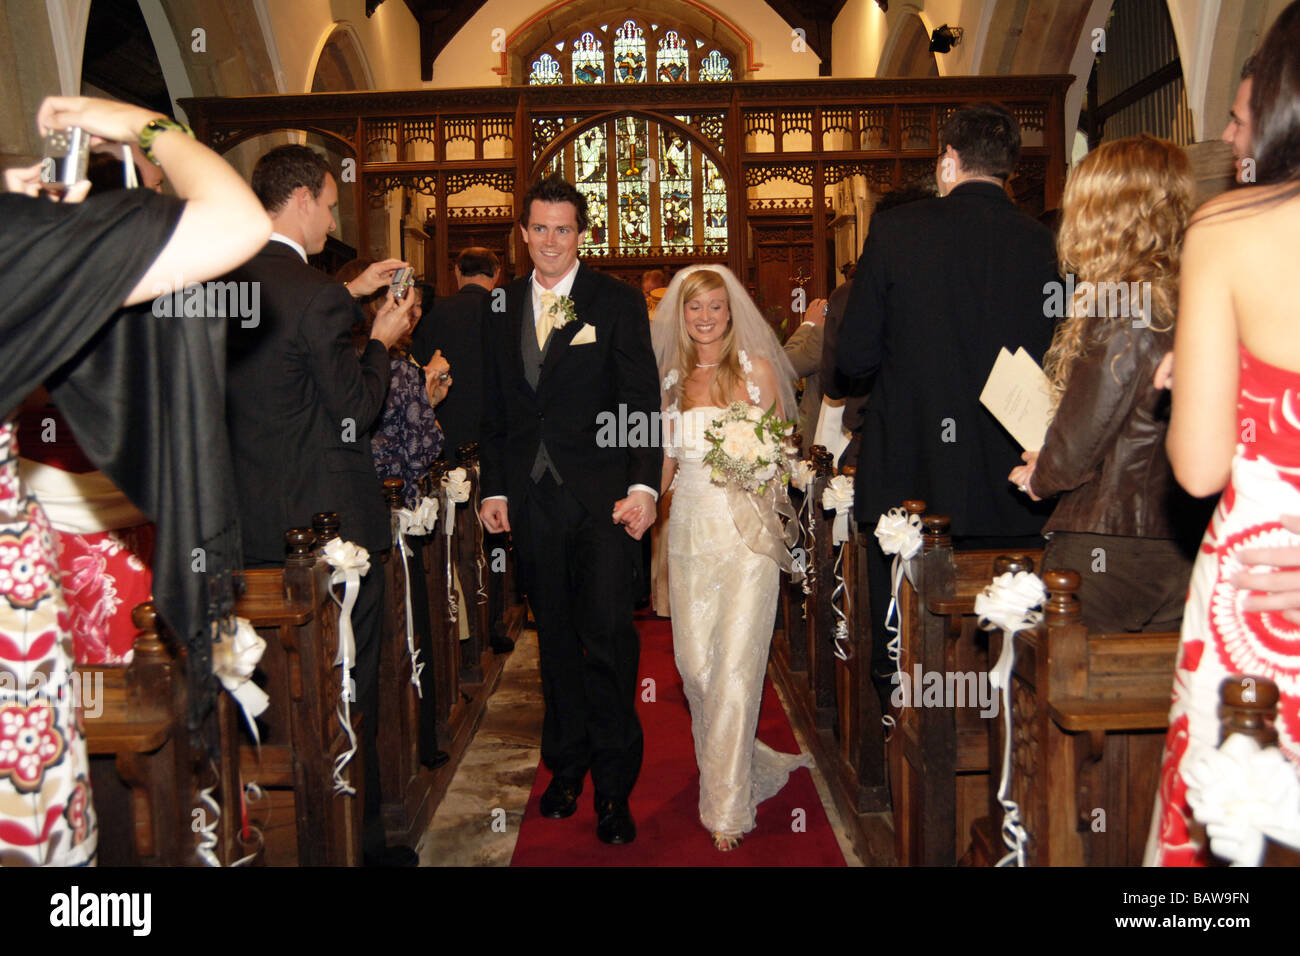 Young couple of newly weds walk down the church aisle North Yorkshire. UK MODEL RELEASED - Stock Image